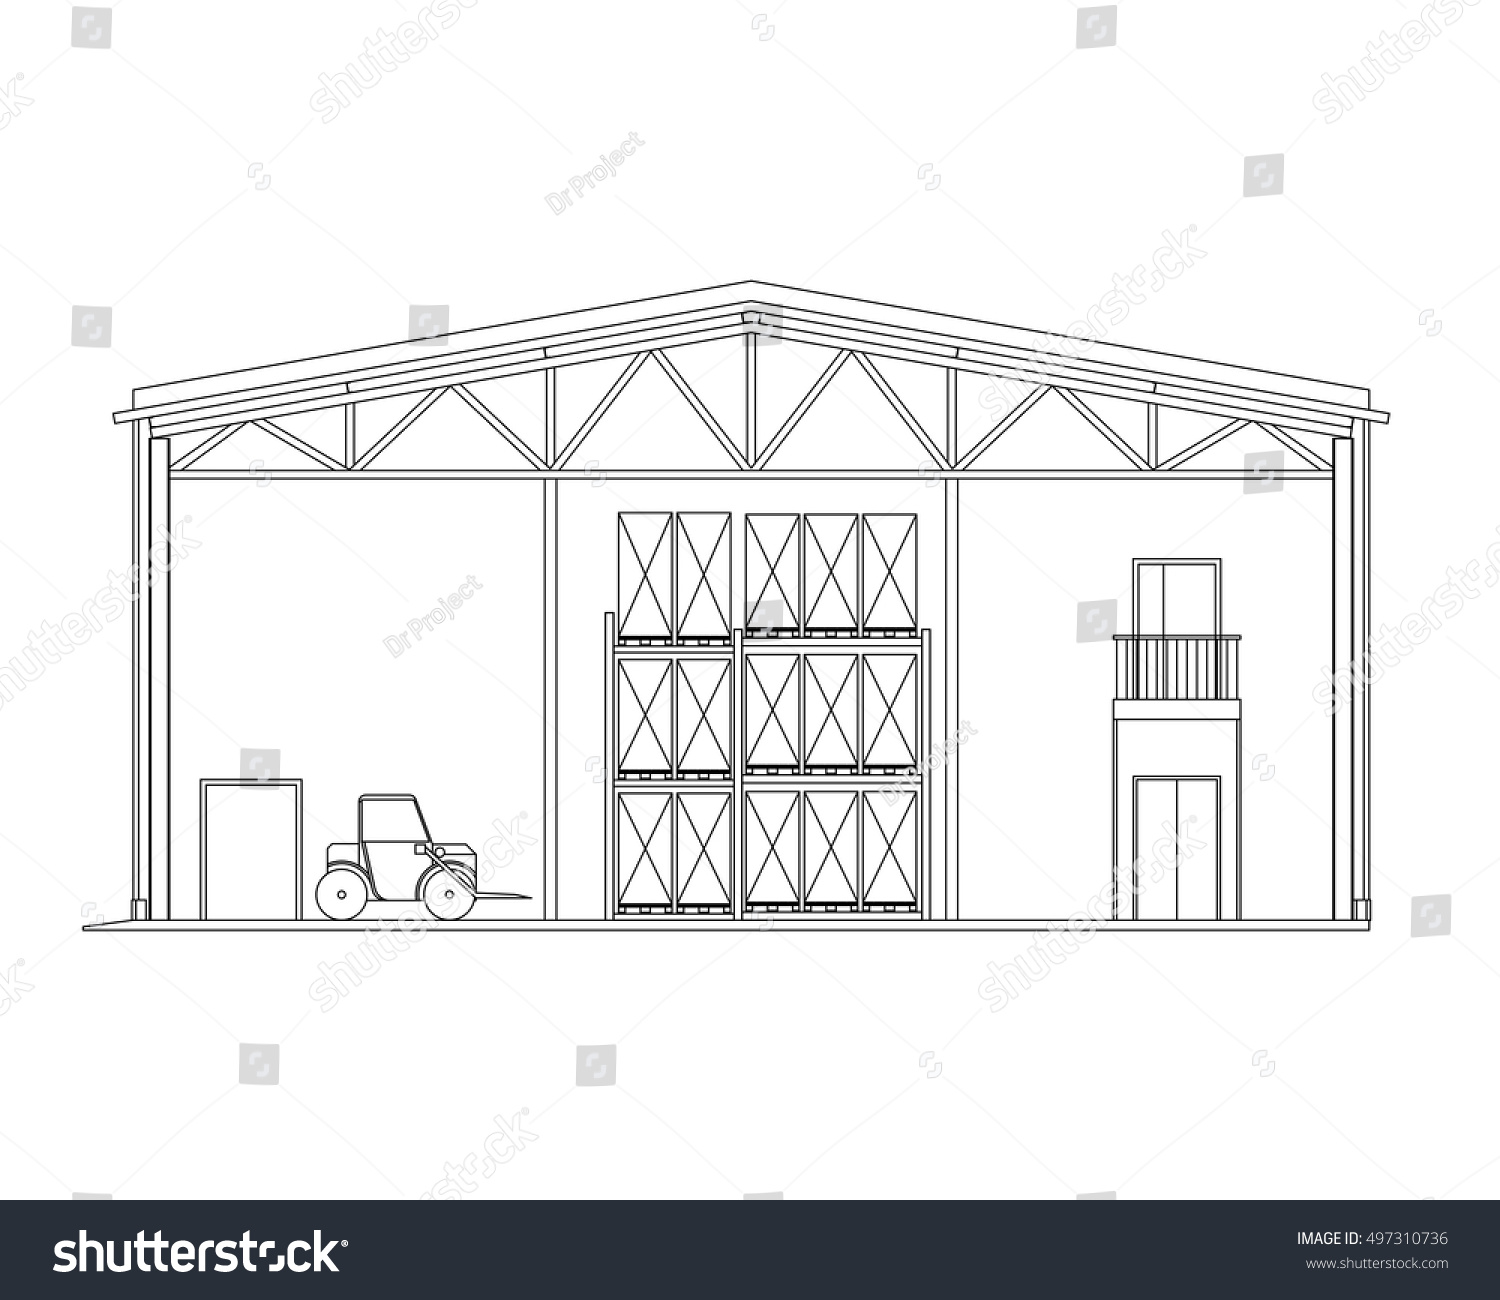 Modern warehouse forklift crosssection storage vector stock vector modern warehouse with forklift cross section storage vector blueprint architectural background malvernweather Image collections